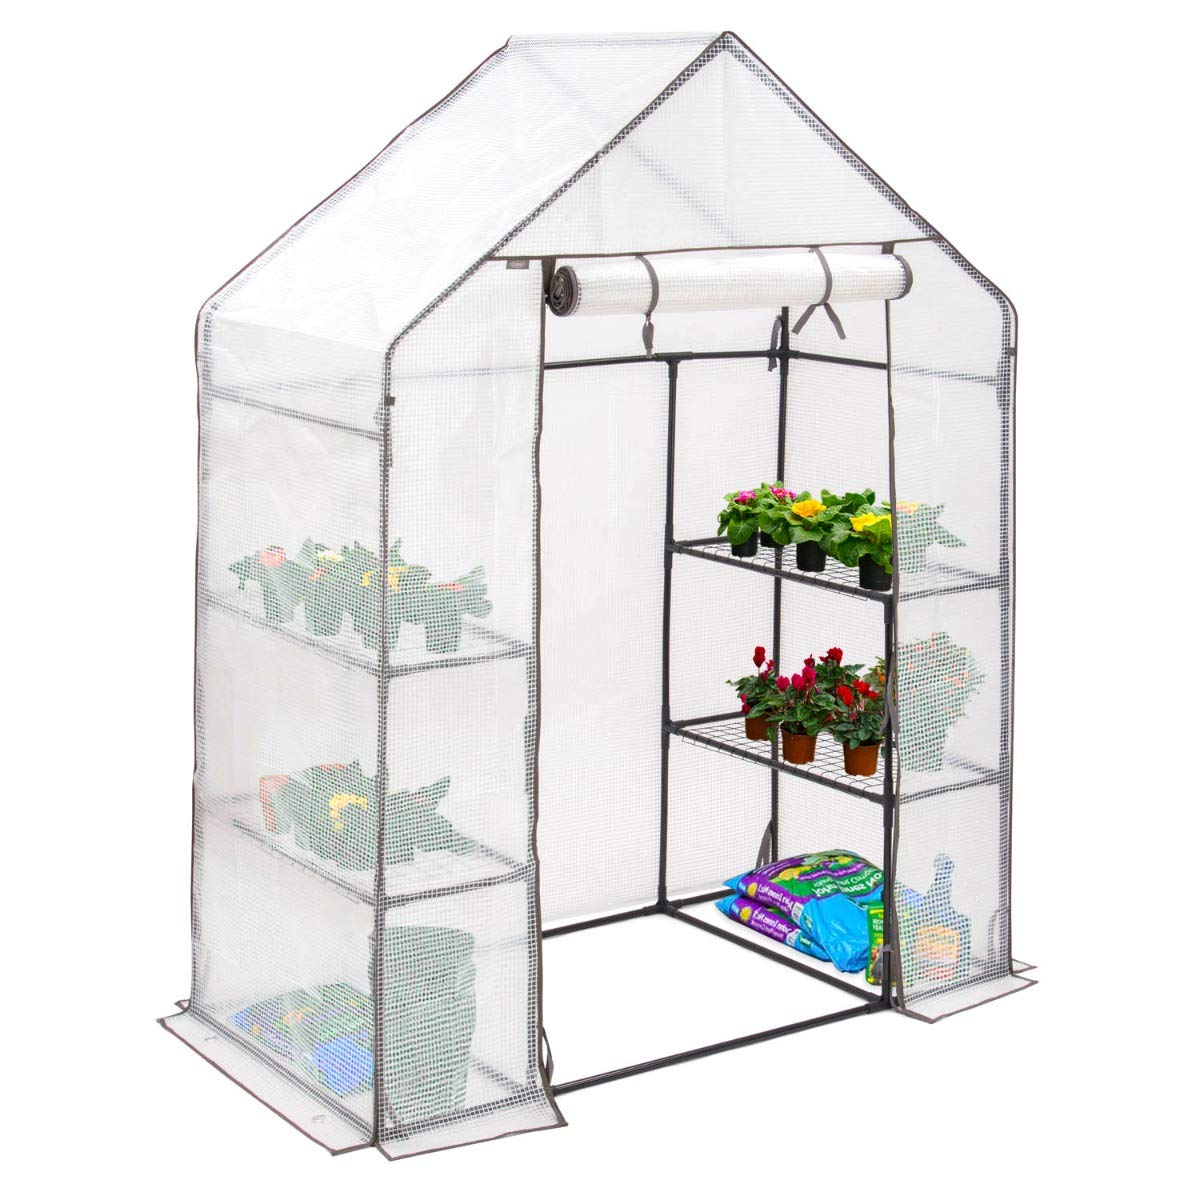 Double Zip PVC Cover Compact Garden Growhouse Christow Large 6ft Walk-In Greenhouse 4 Shelves Sturdy Steel Frame